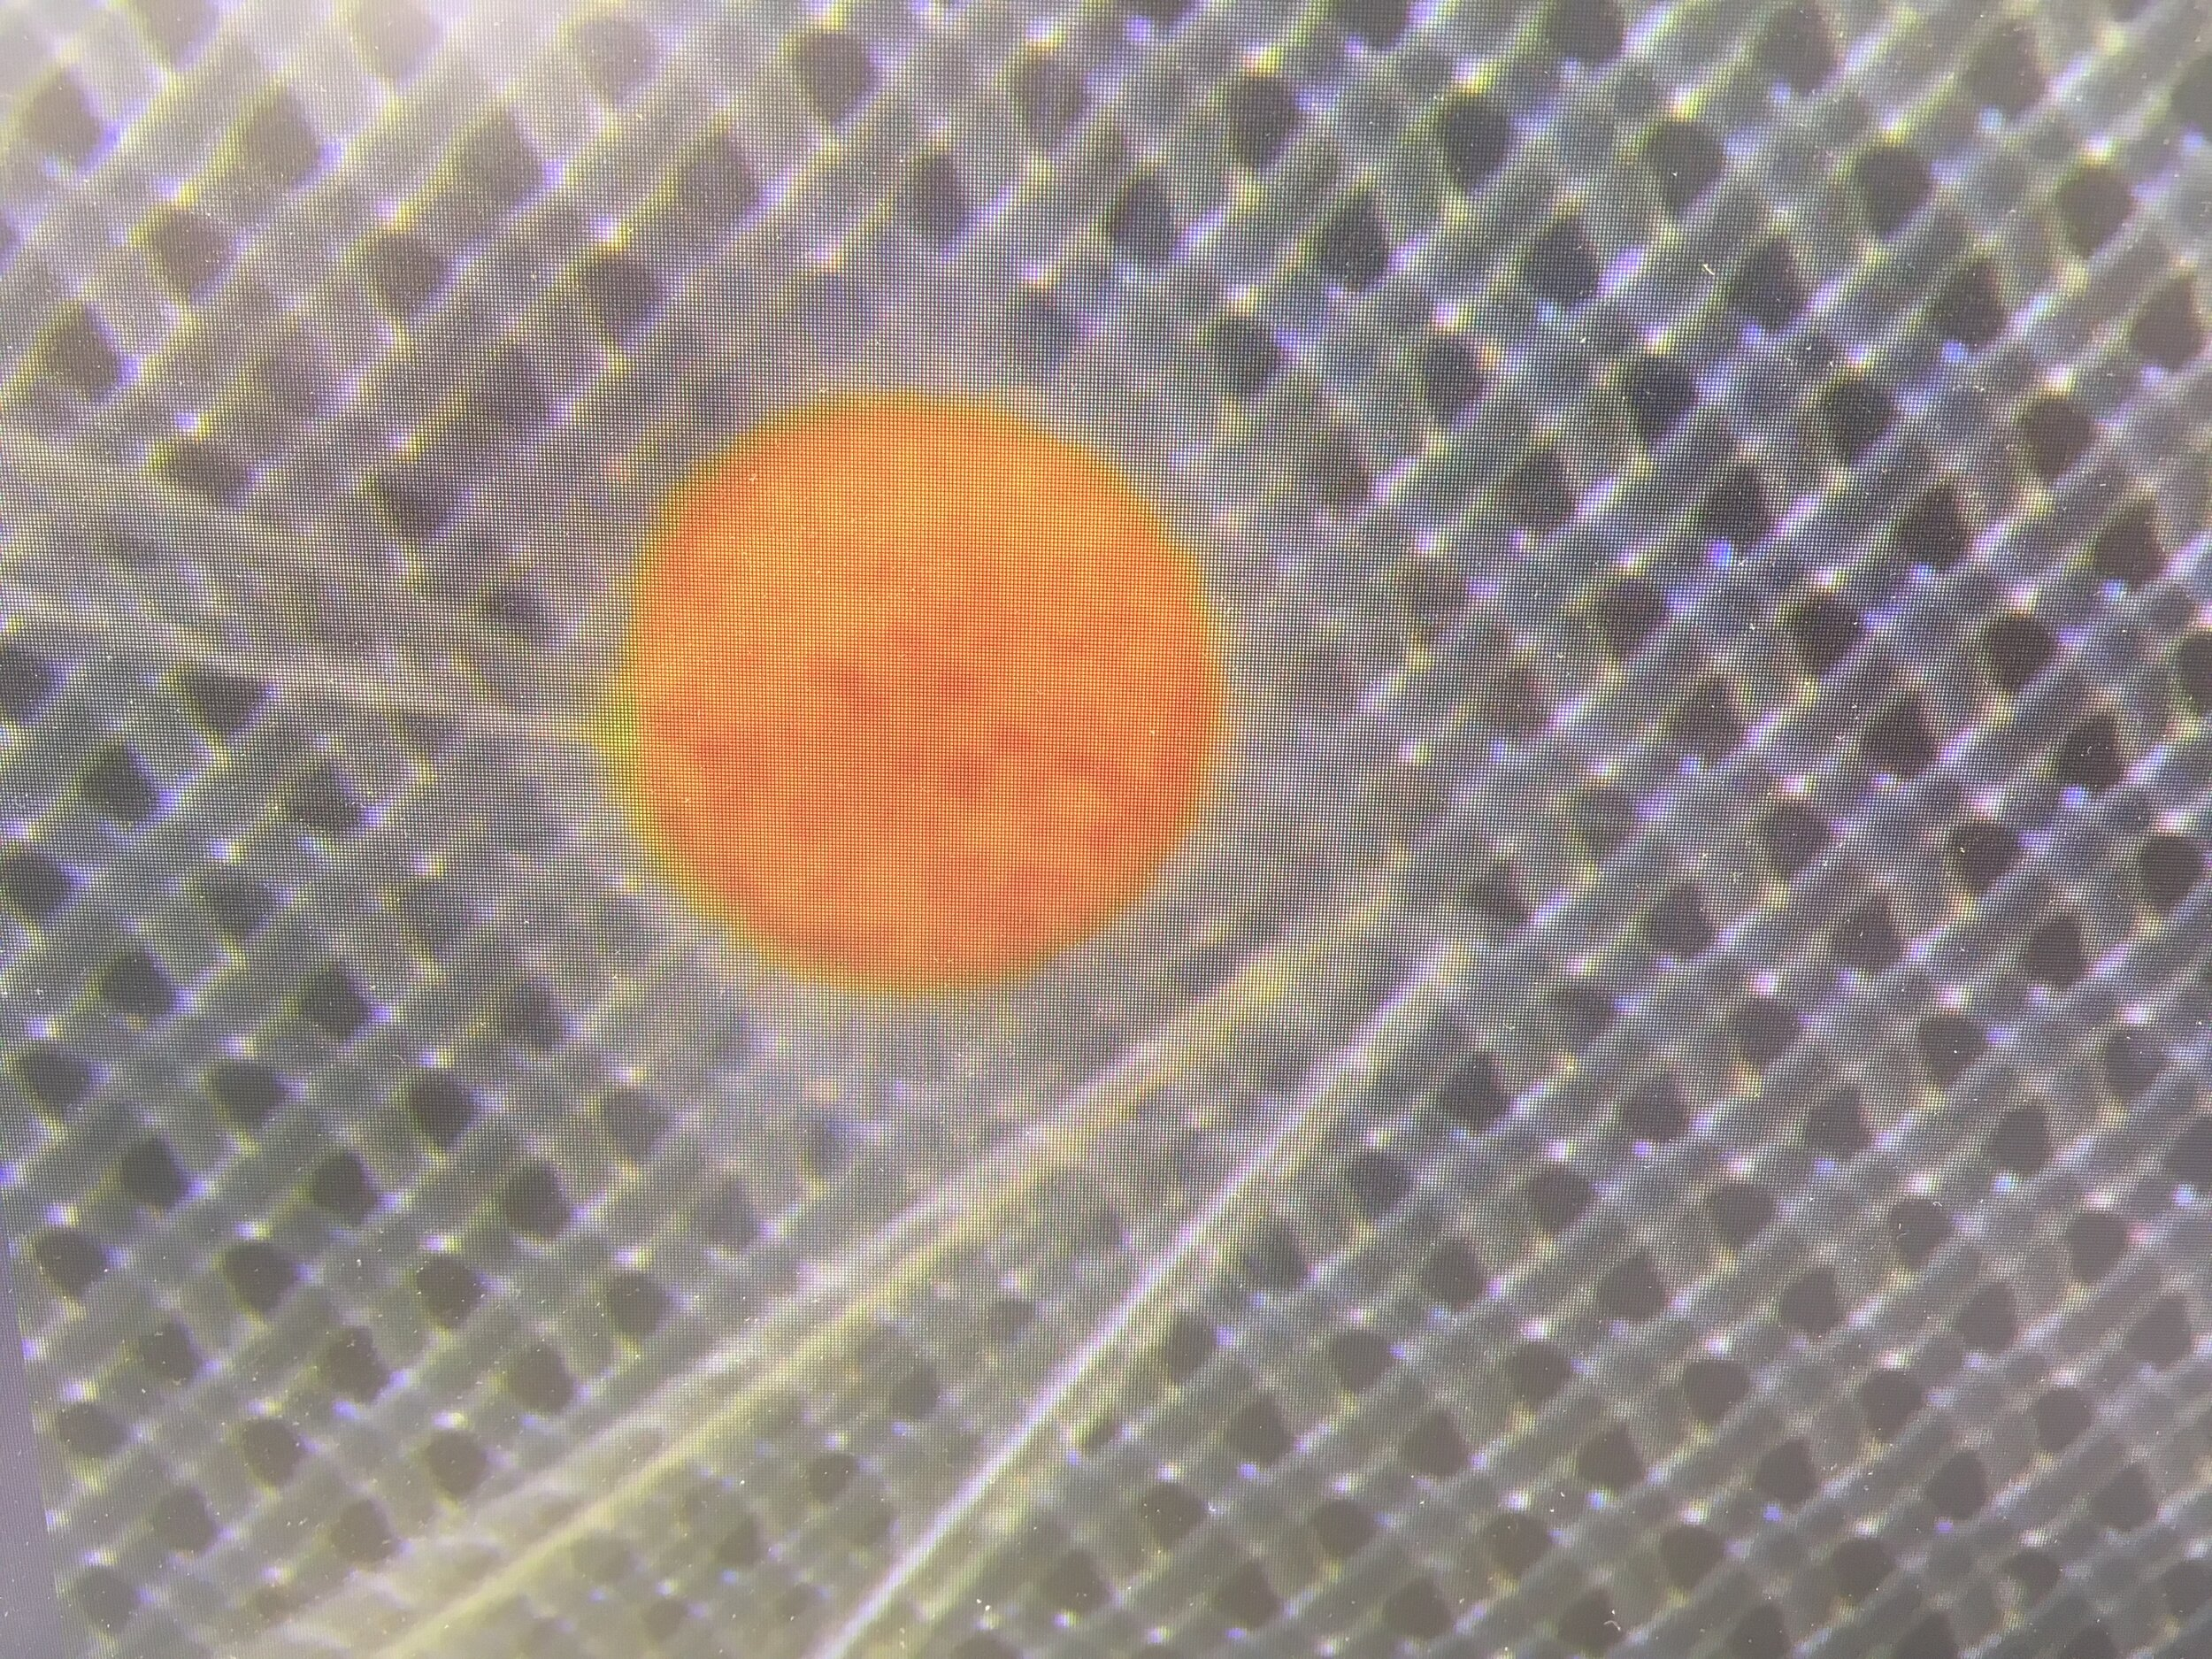 Orbulina Universa being probed with microelectrodes